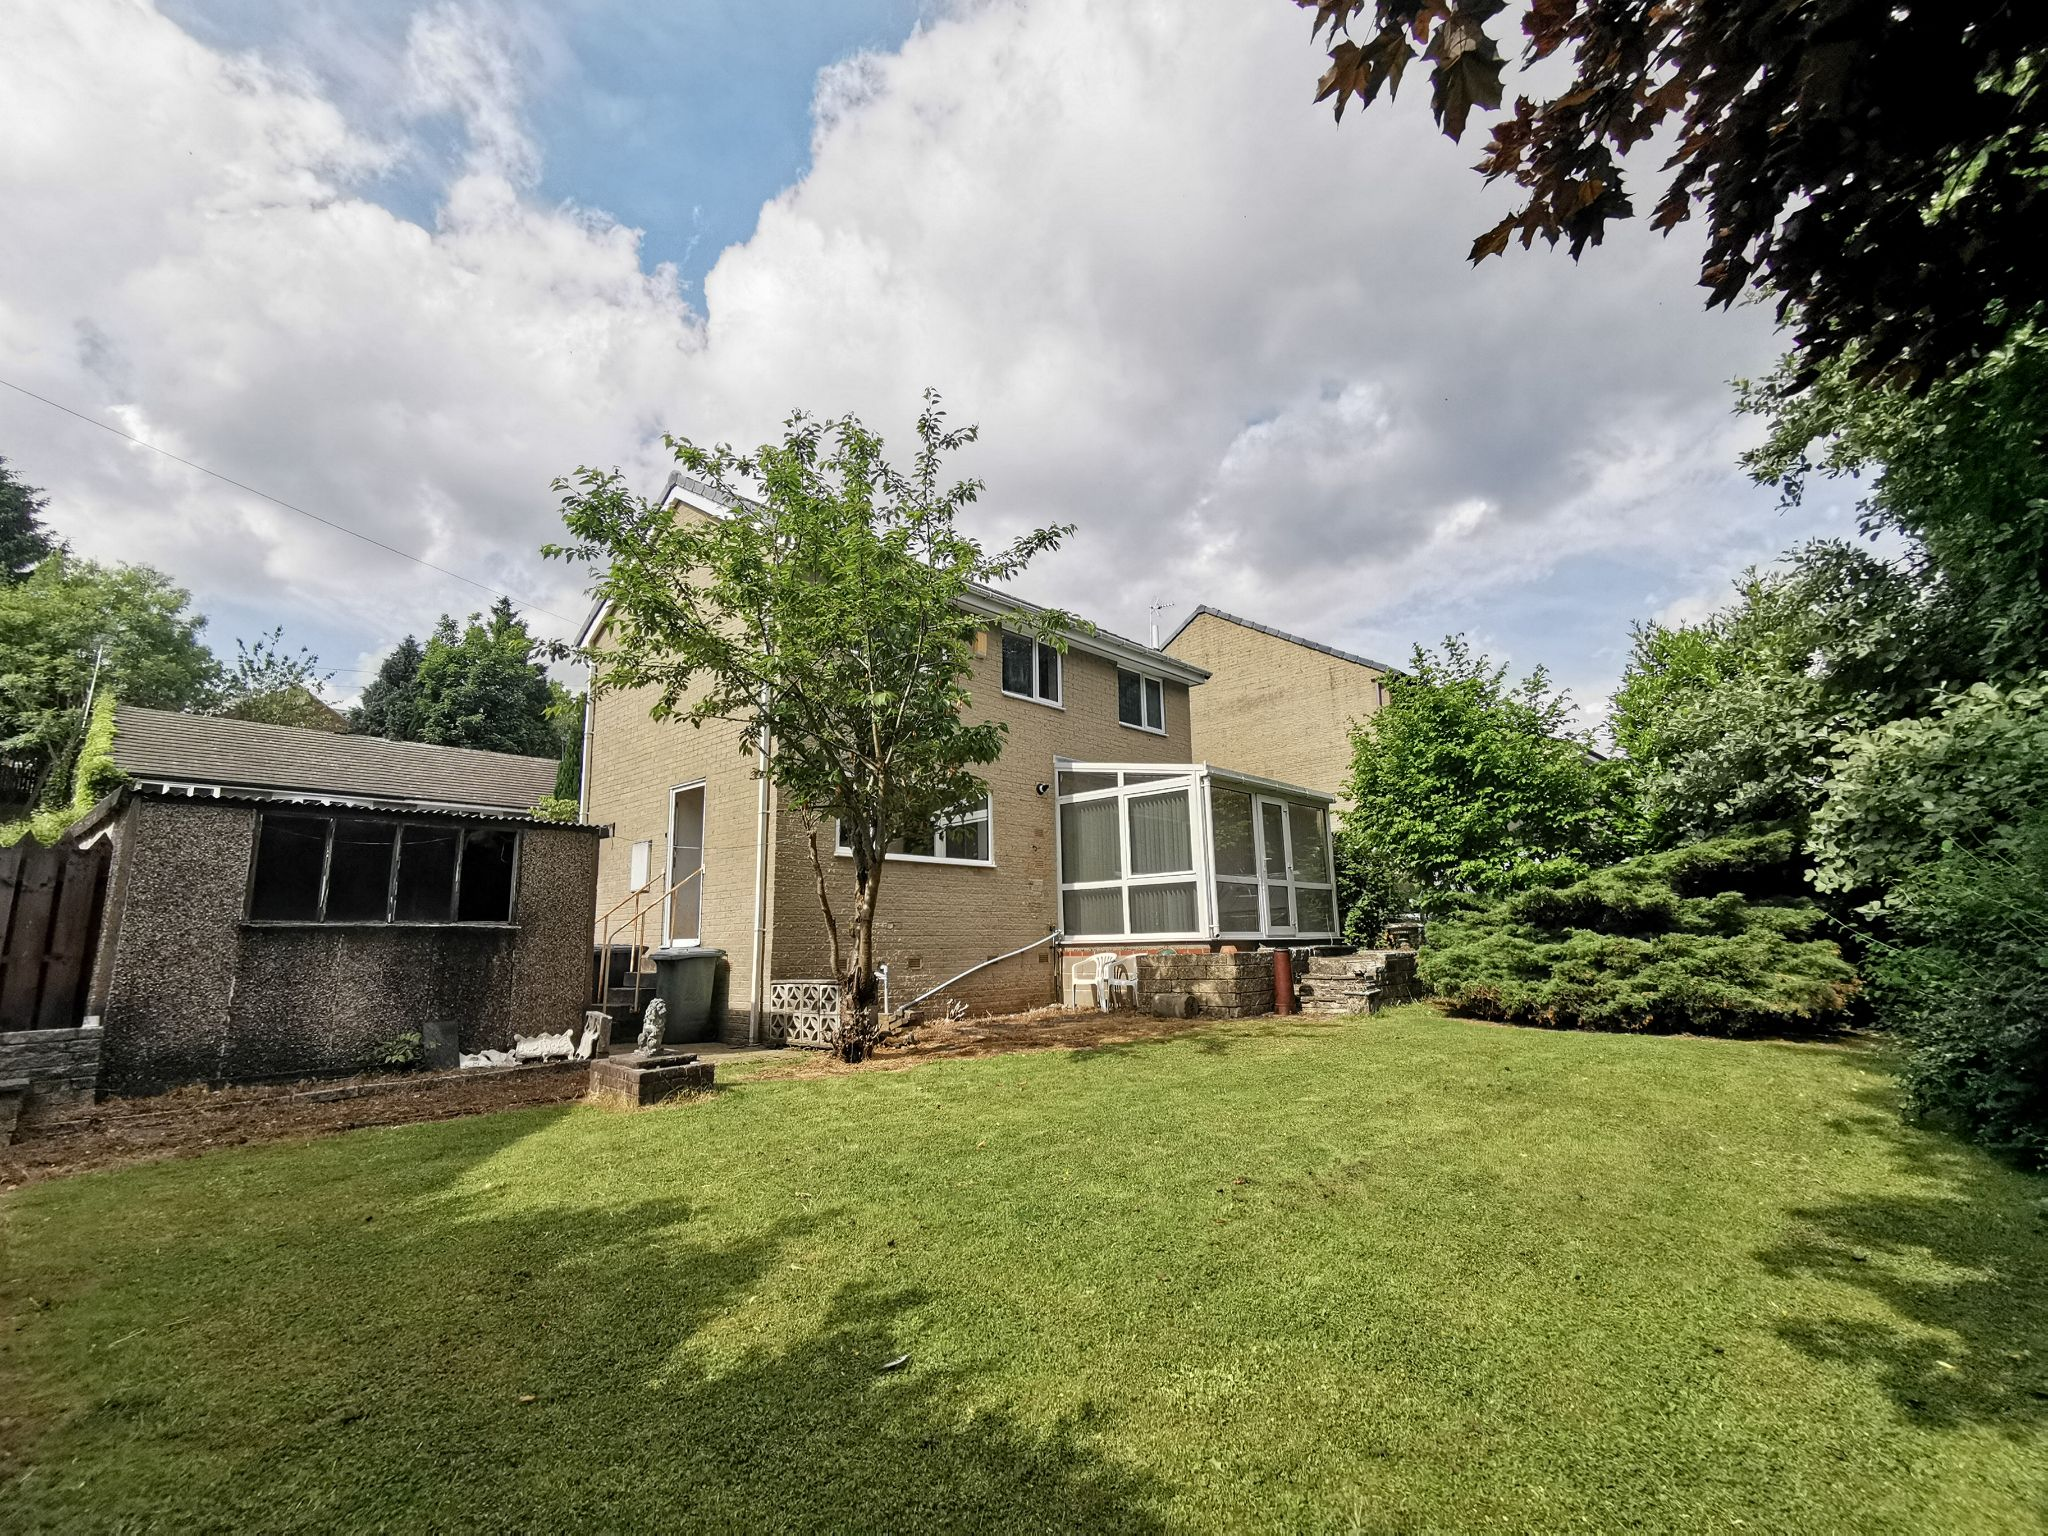 3 bedroom detached house Sold in Bradford - Photograph 19.